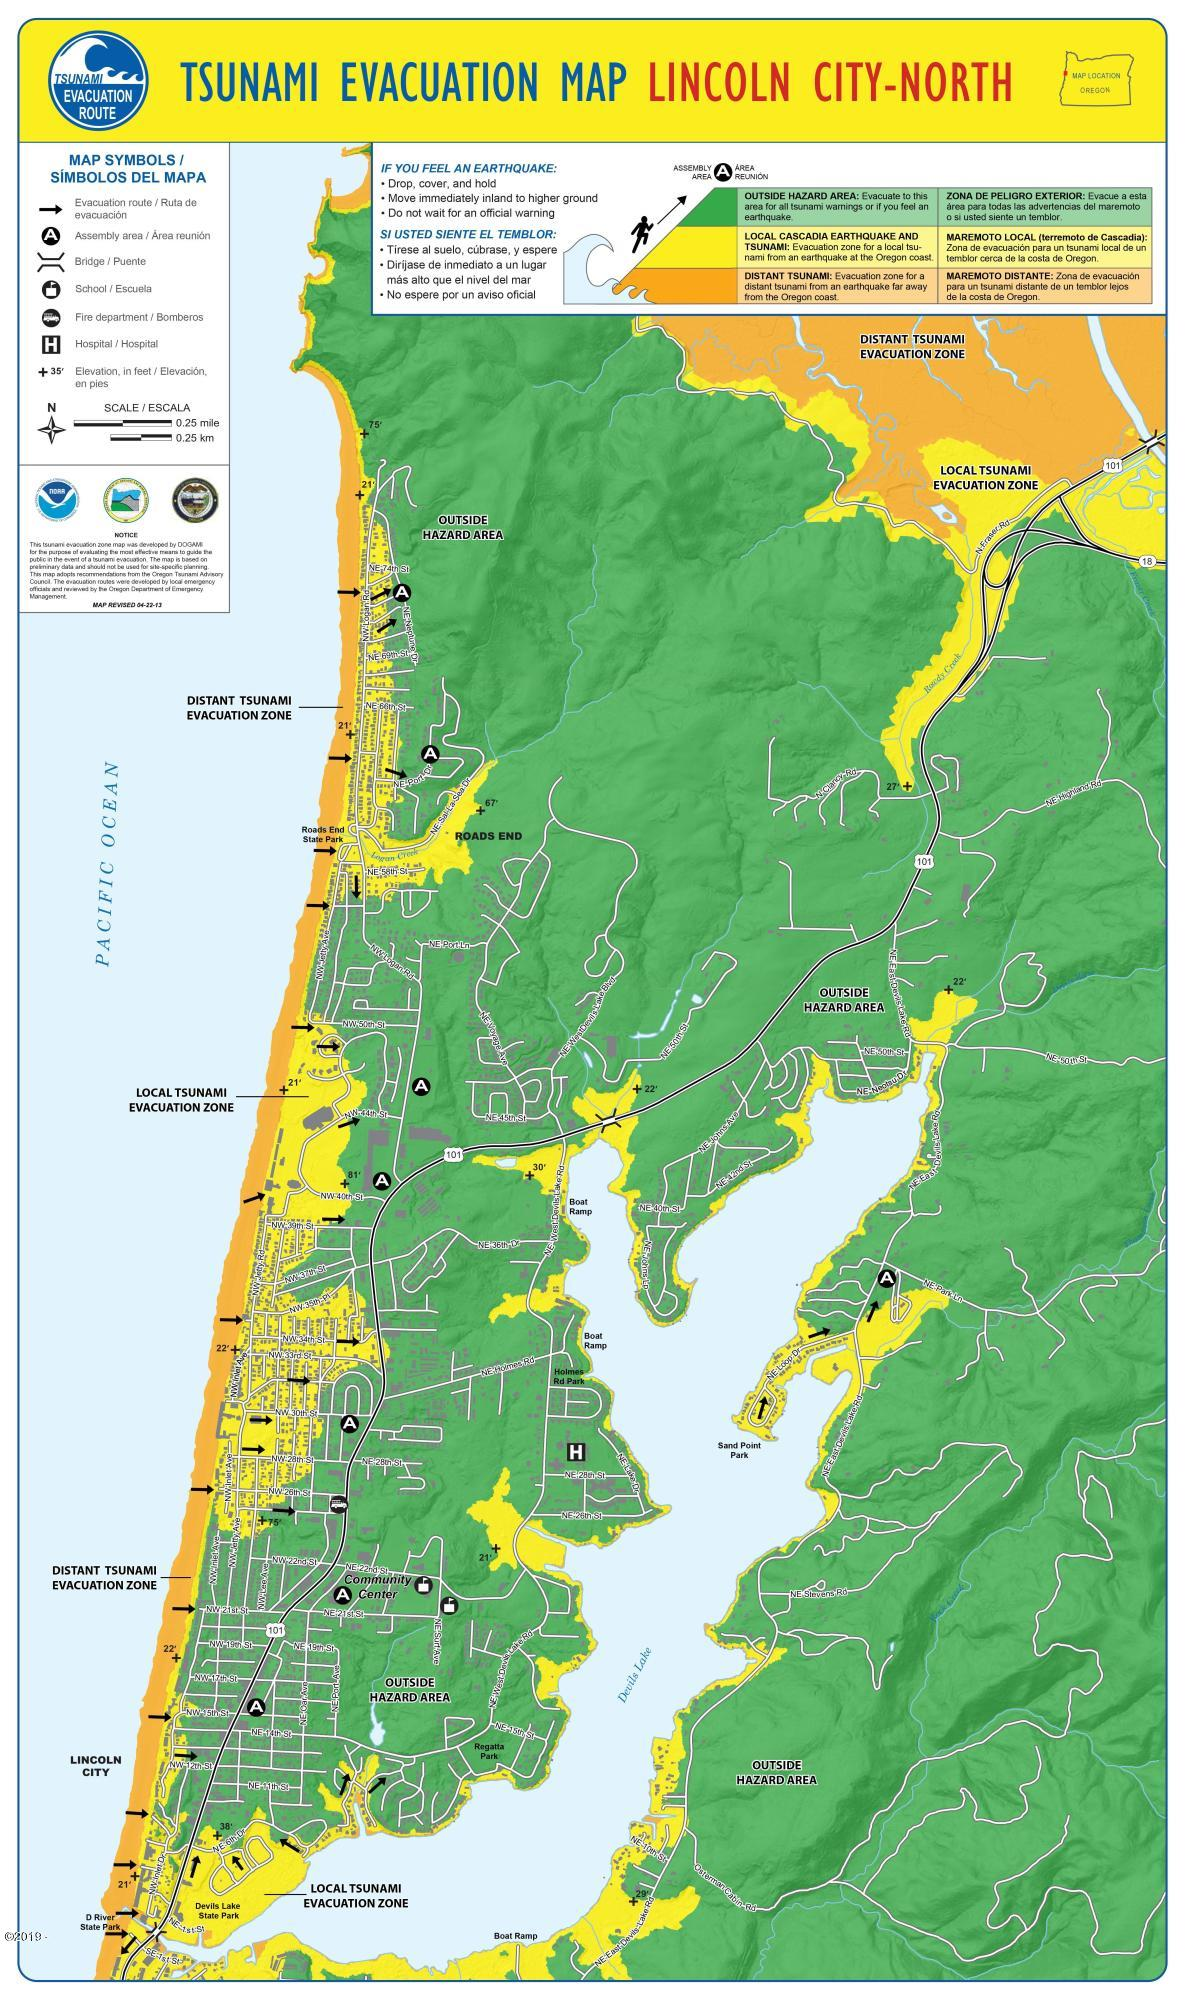 TL 3211 NE Williams Court, Lincoln City, OR 97367 (MLS:19 ... Map Of Lincoln City Area on map of grand rapids mi, map of cannon beach, map of florence, map of lewes, map of medford, map of pacific city, map of venice ca,